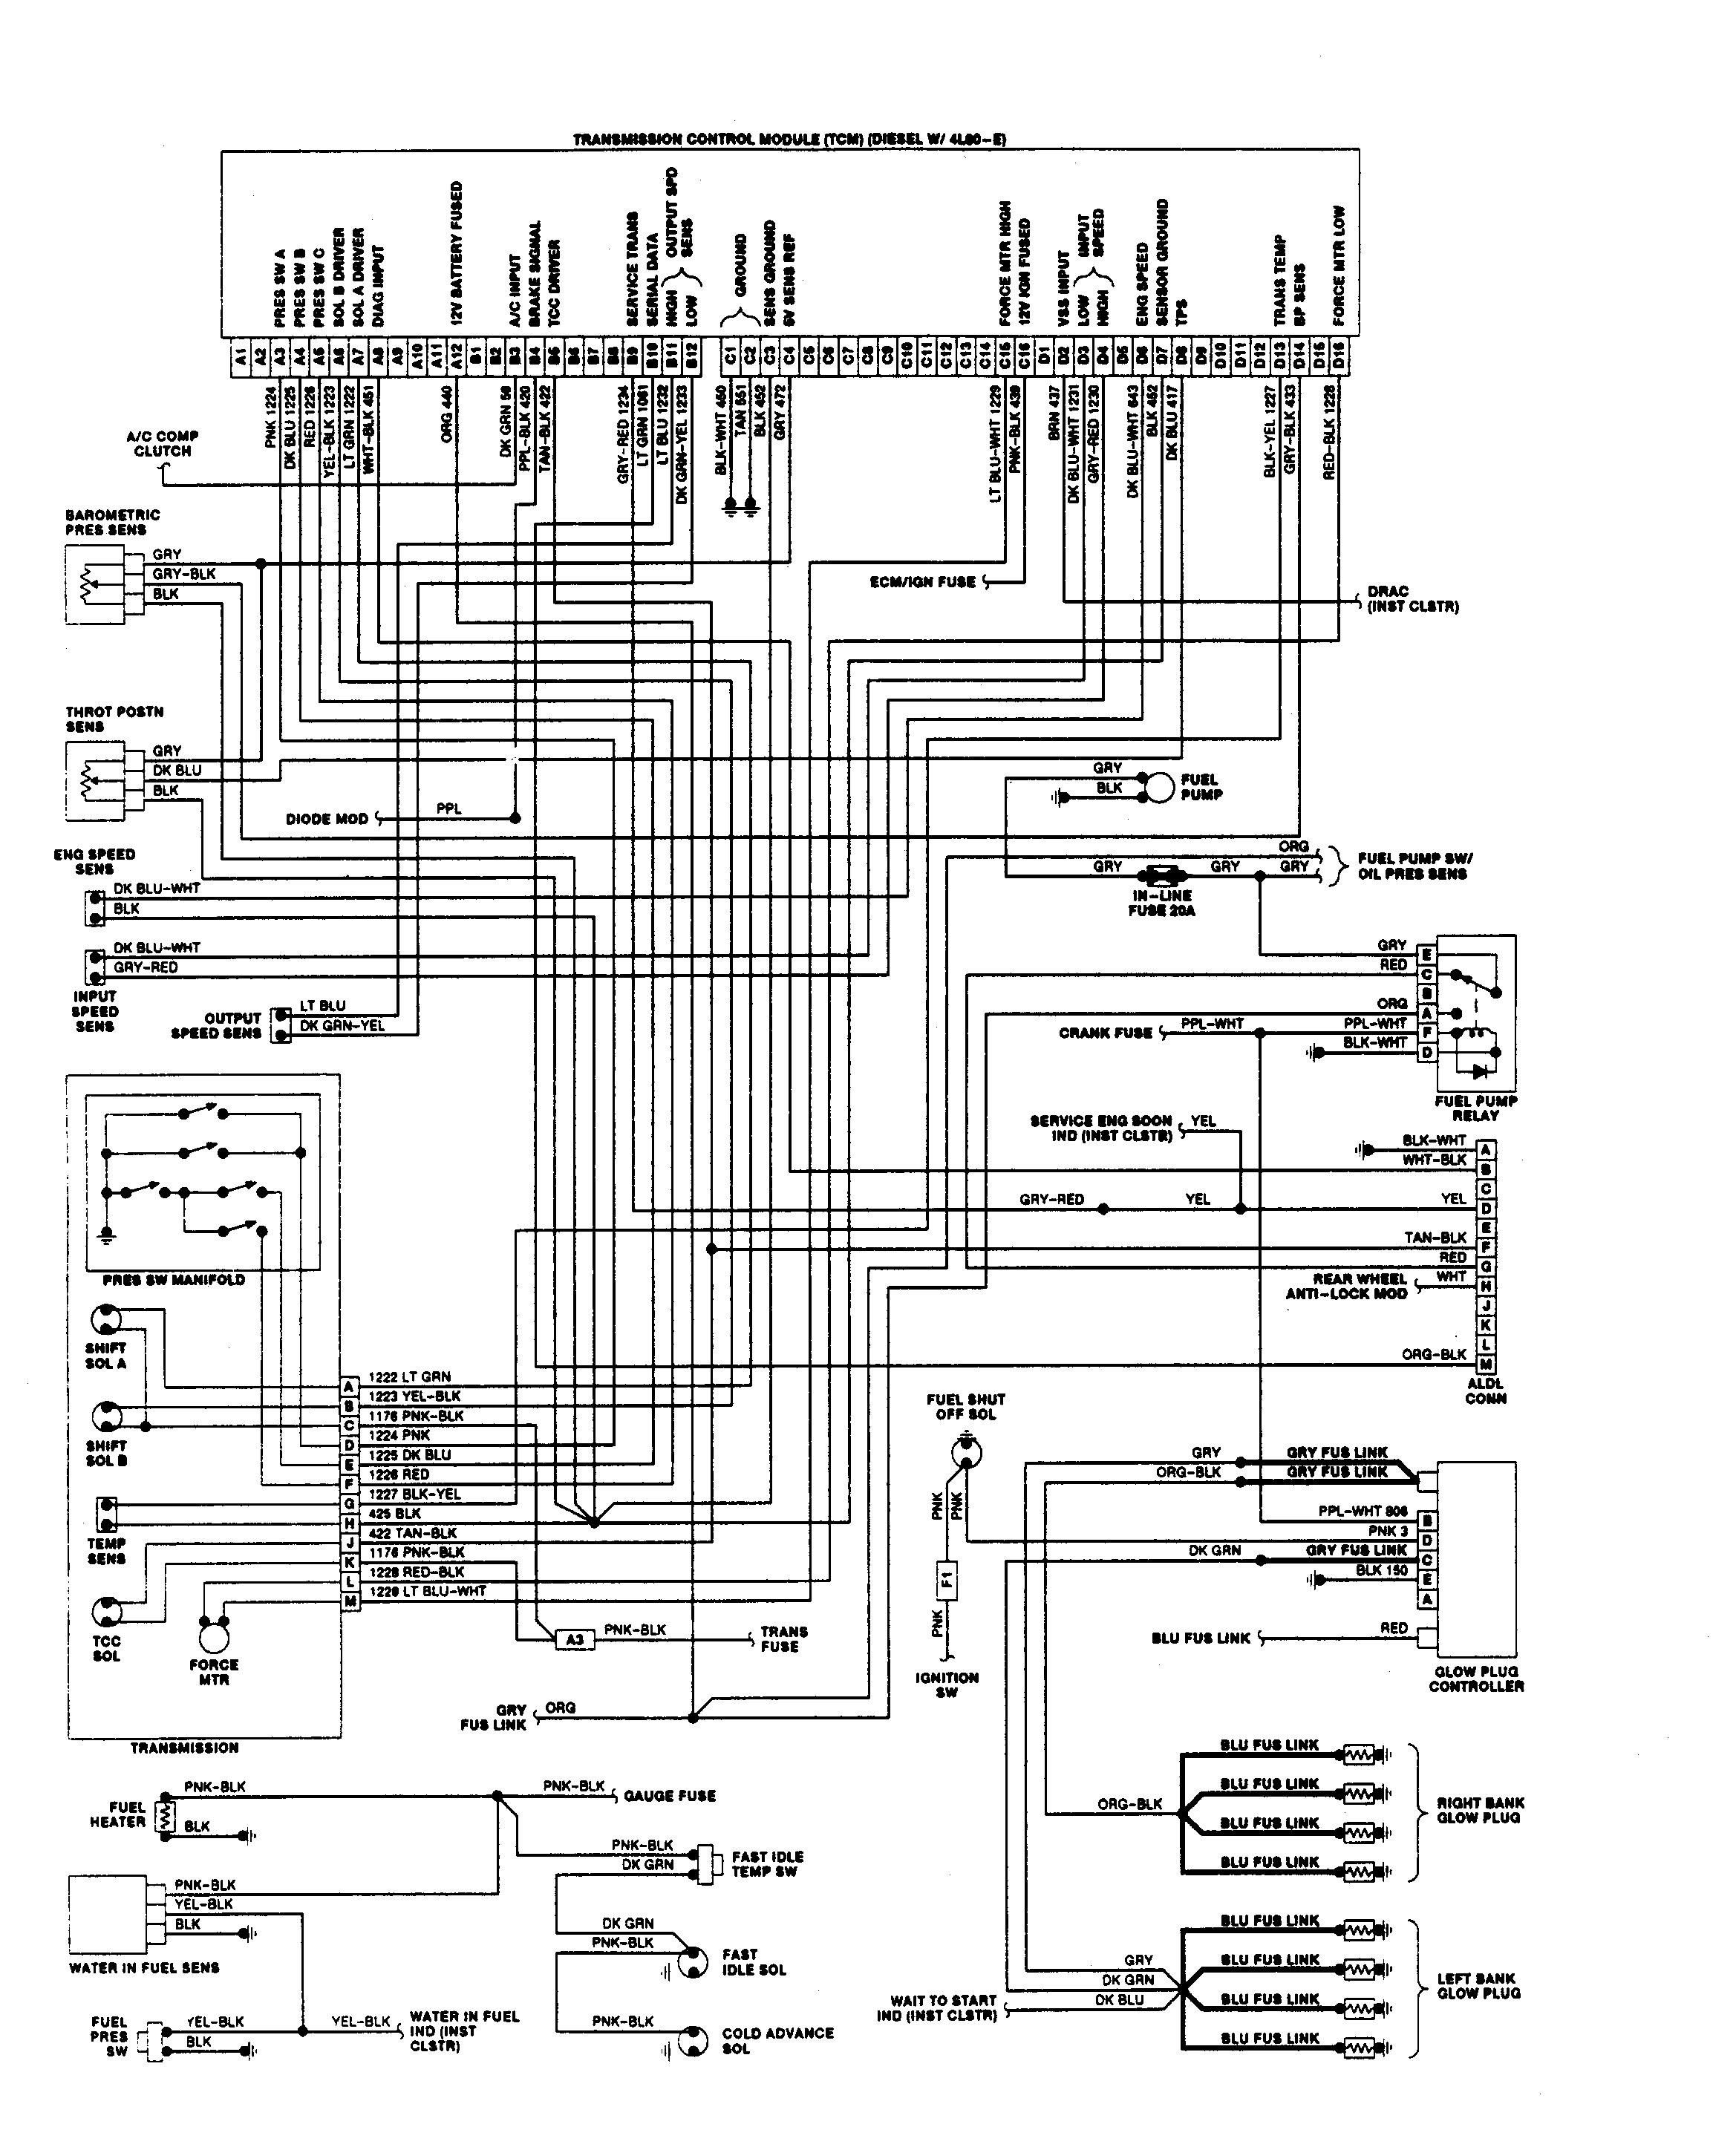 Chevrolet Van Wiring Diagram Daily Update 2005 Astro 1993 Chevy G20 Free Engine Image Express